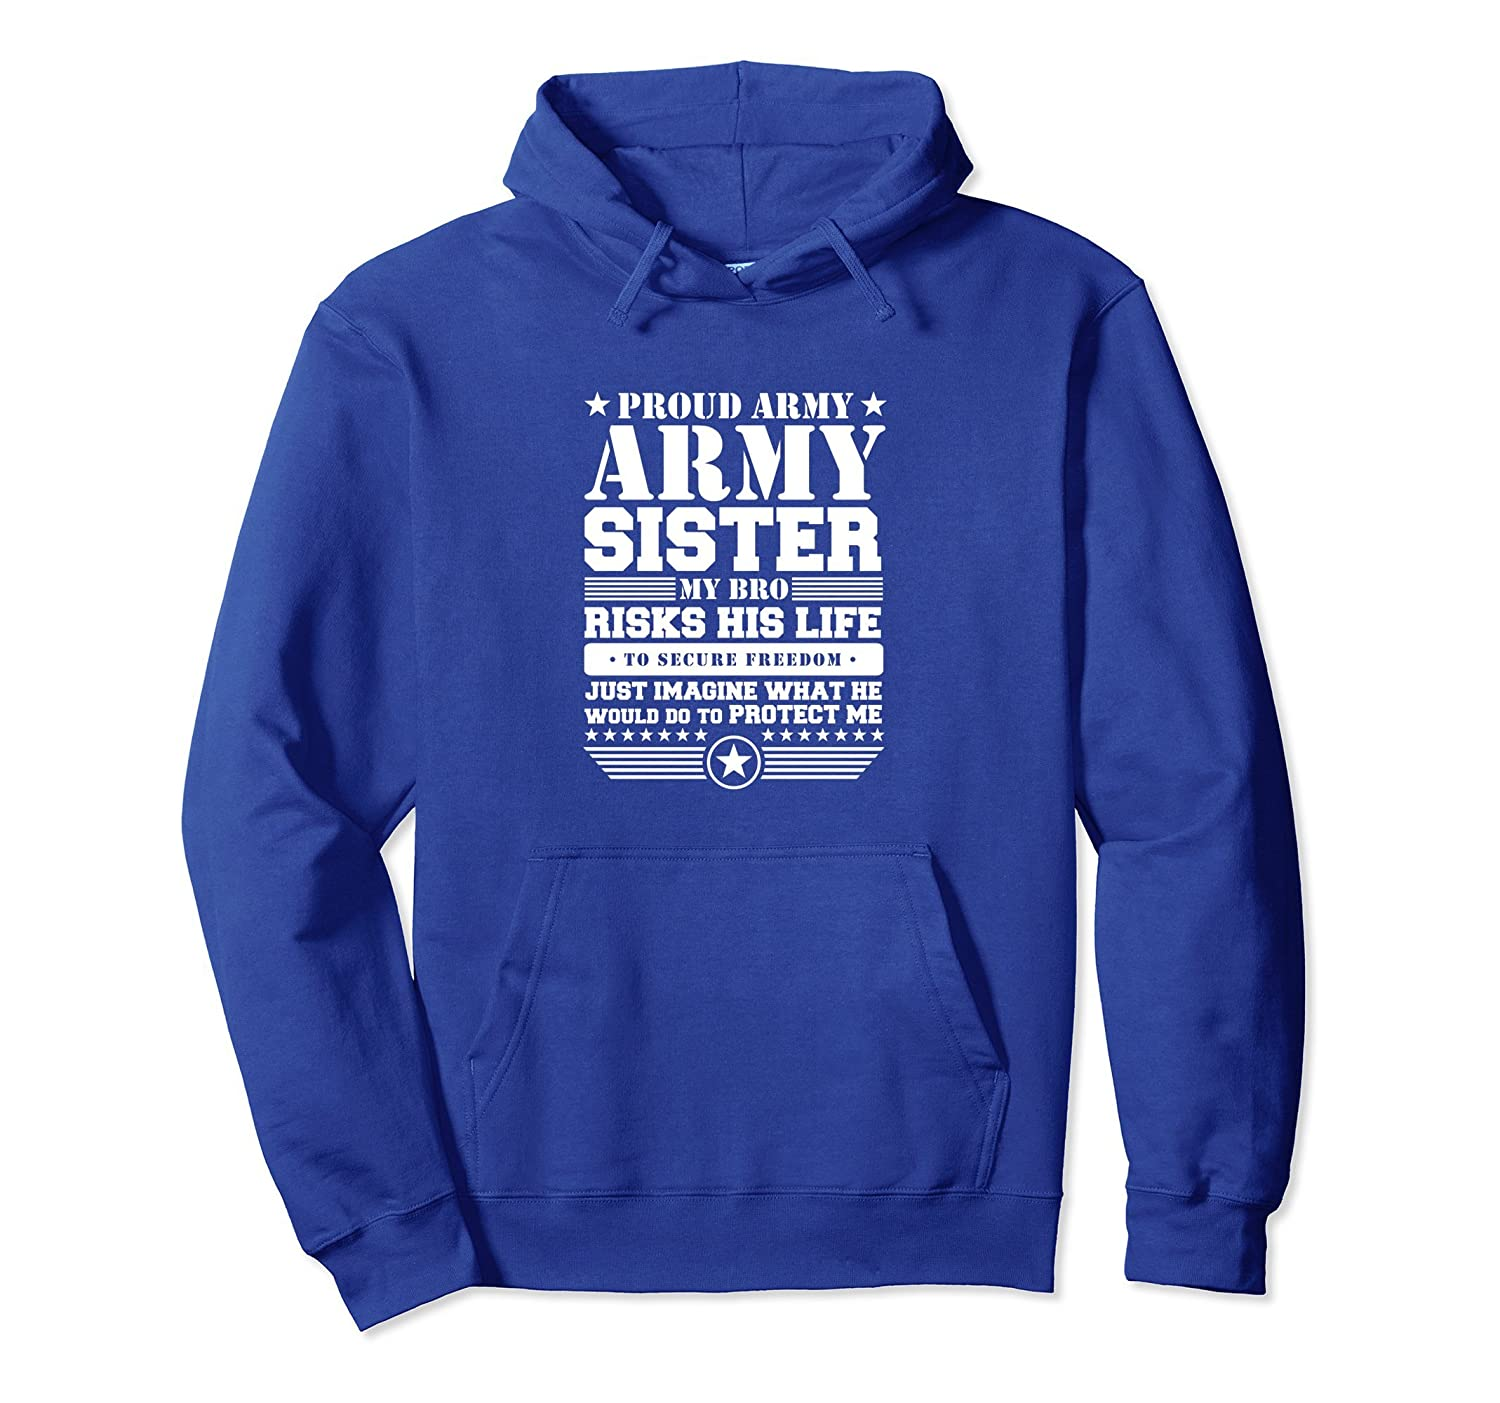 Proud Army Sister Hoodie Military Sister Protects Me-mt